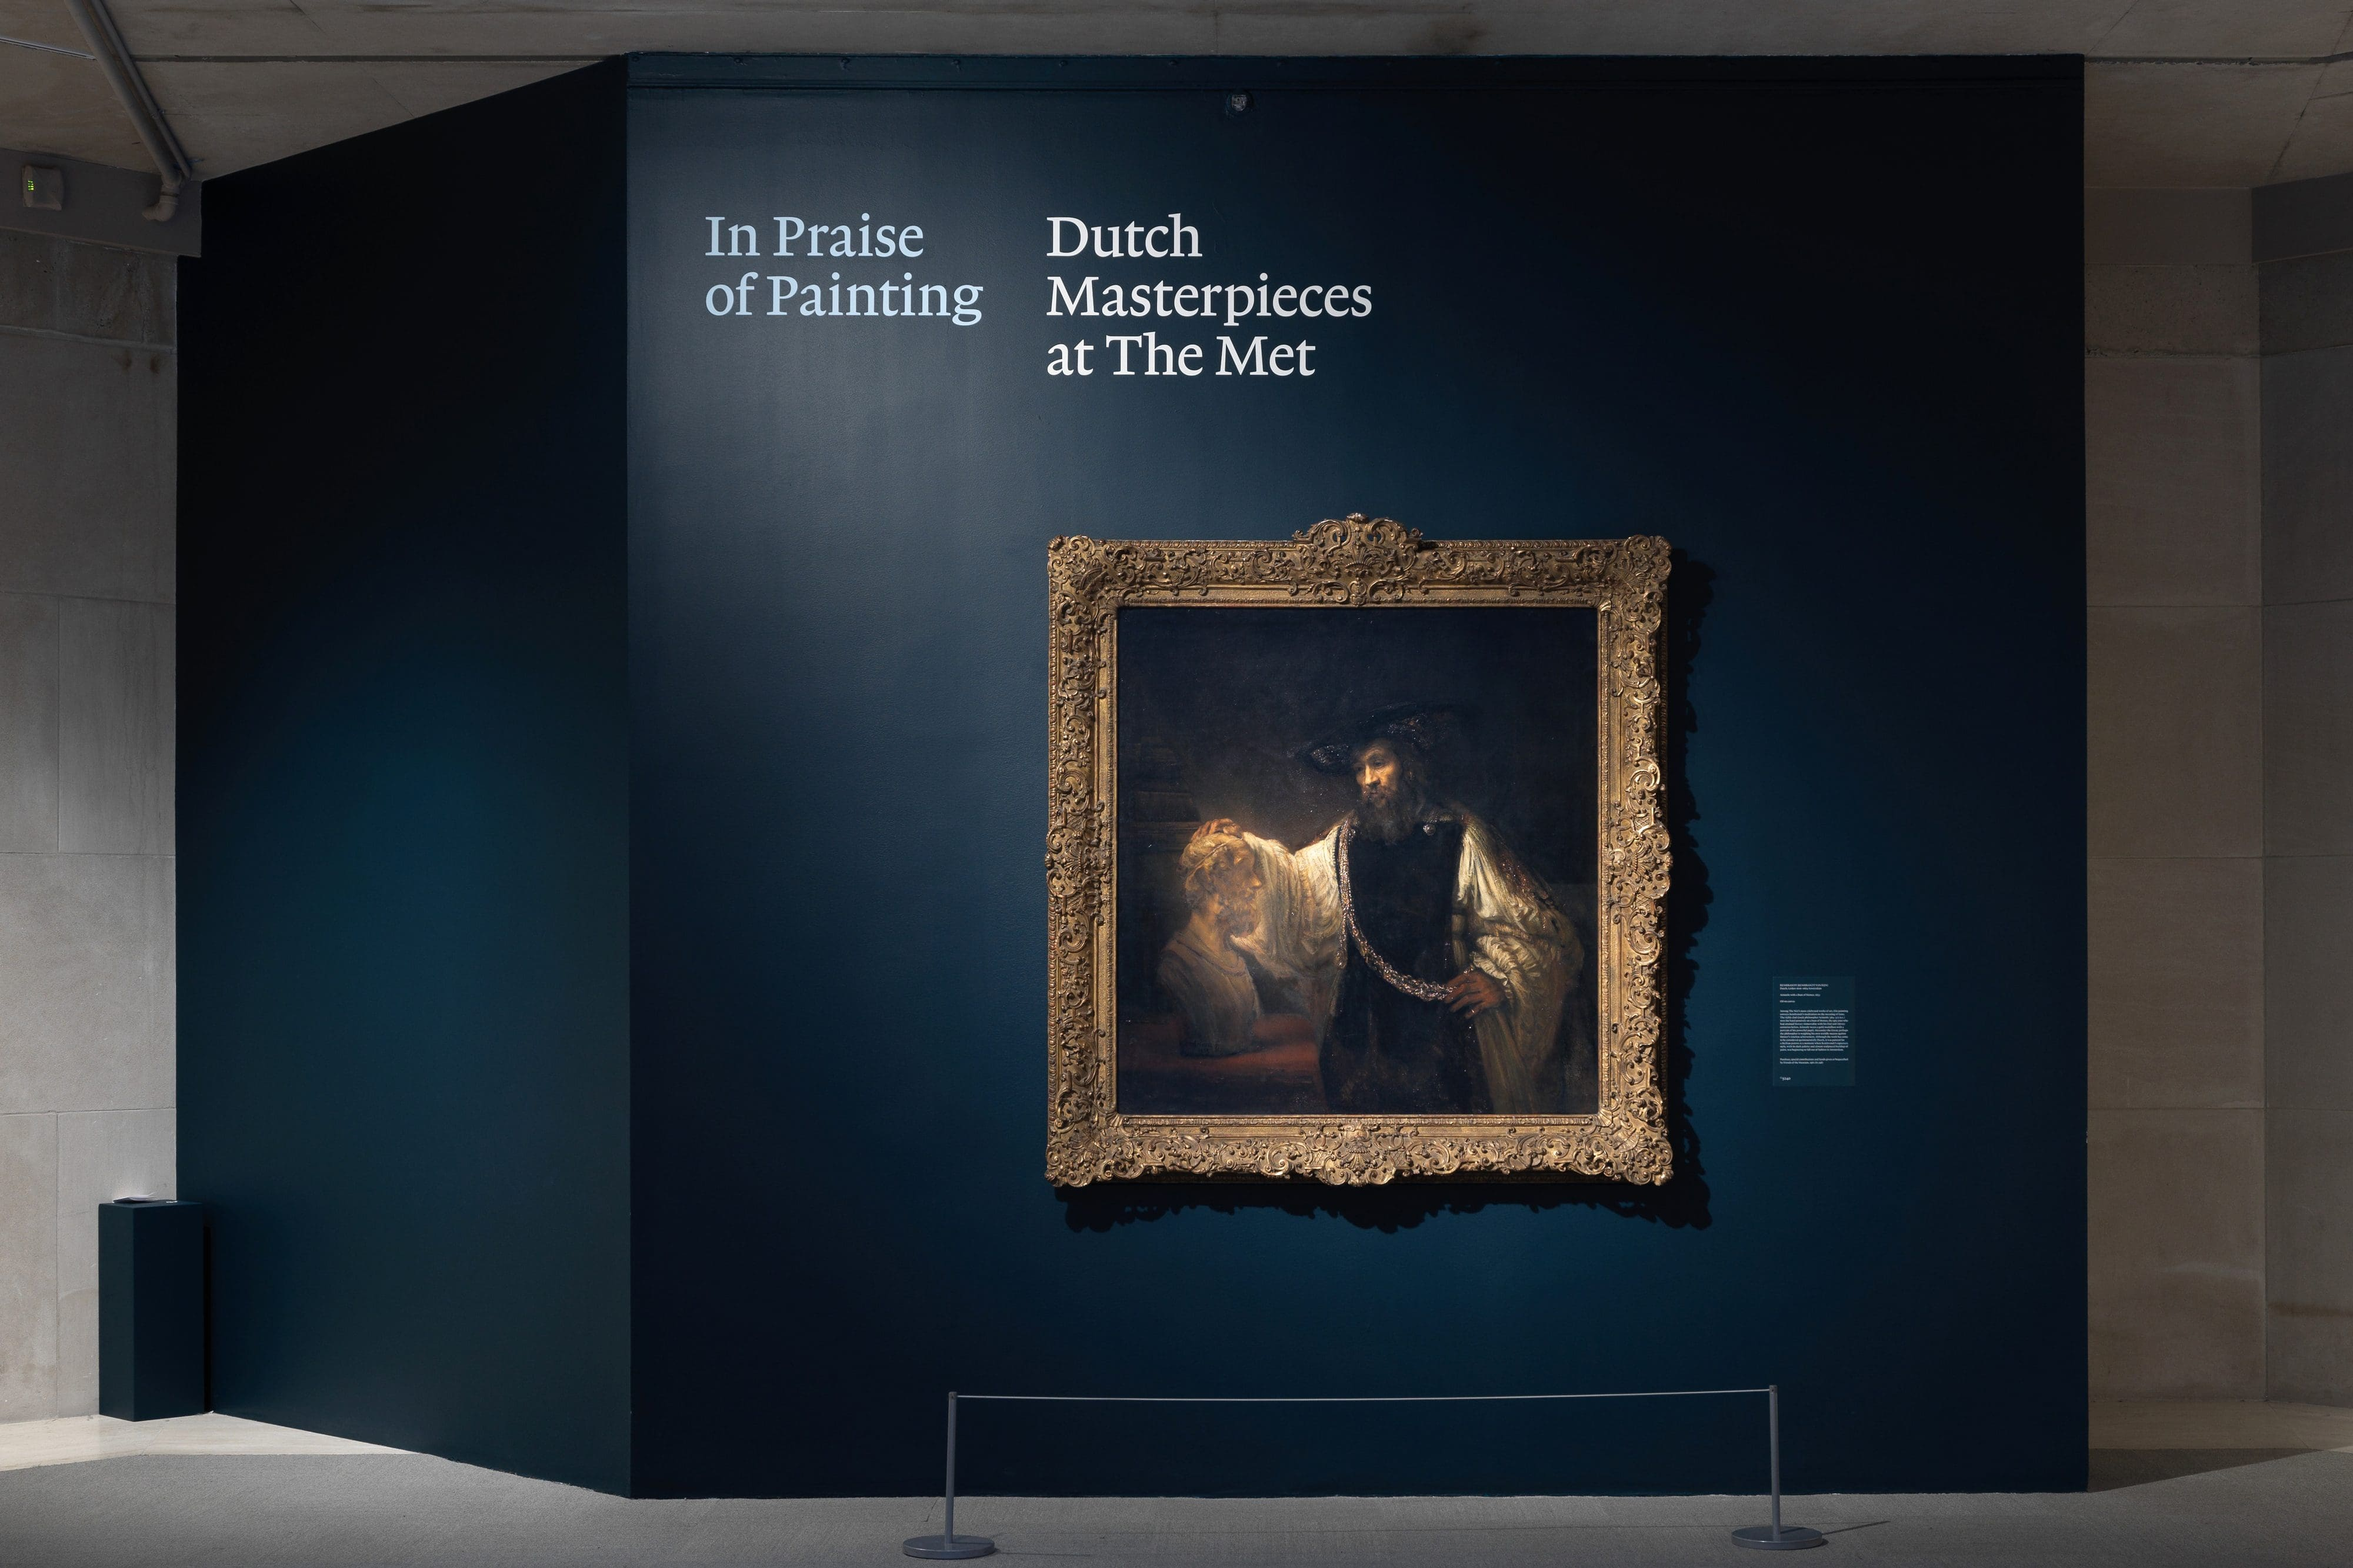 A Dutch Golden Age masterpiece painting hanging on The Met's dark blue wall